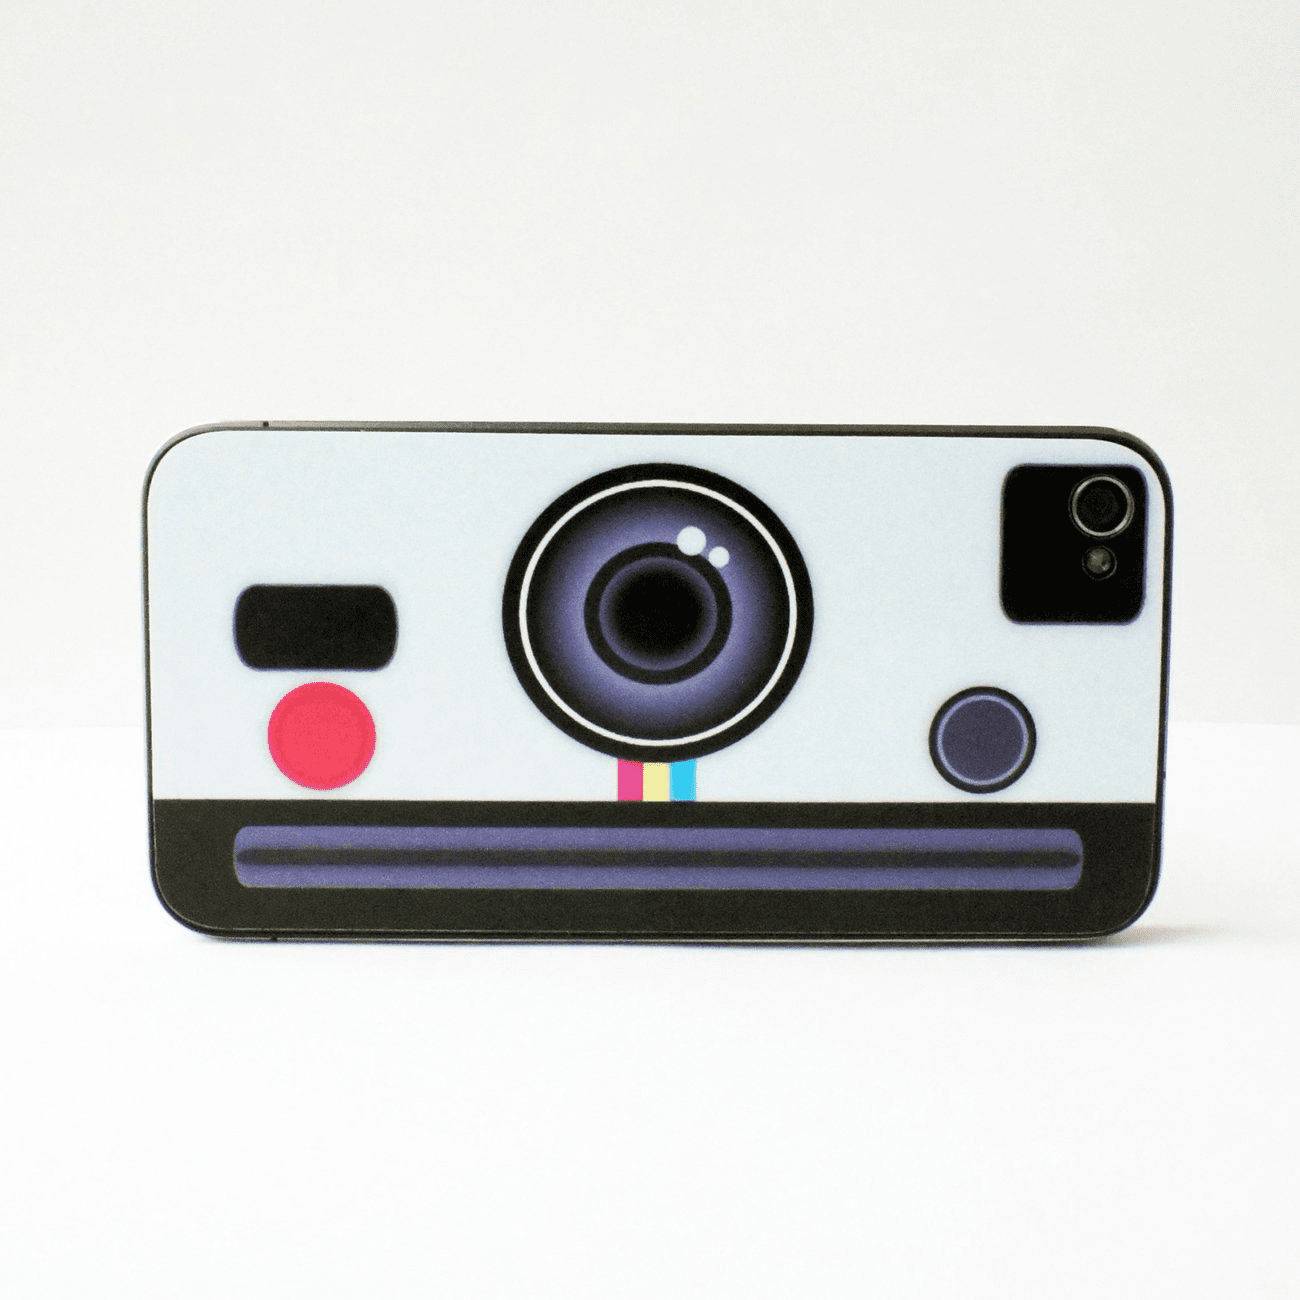 The Polaroid Camera iPhone Decal for iPhone 4, 4s and 5